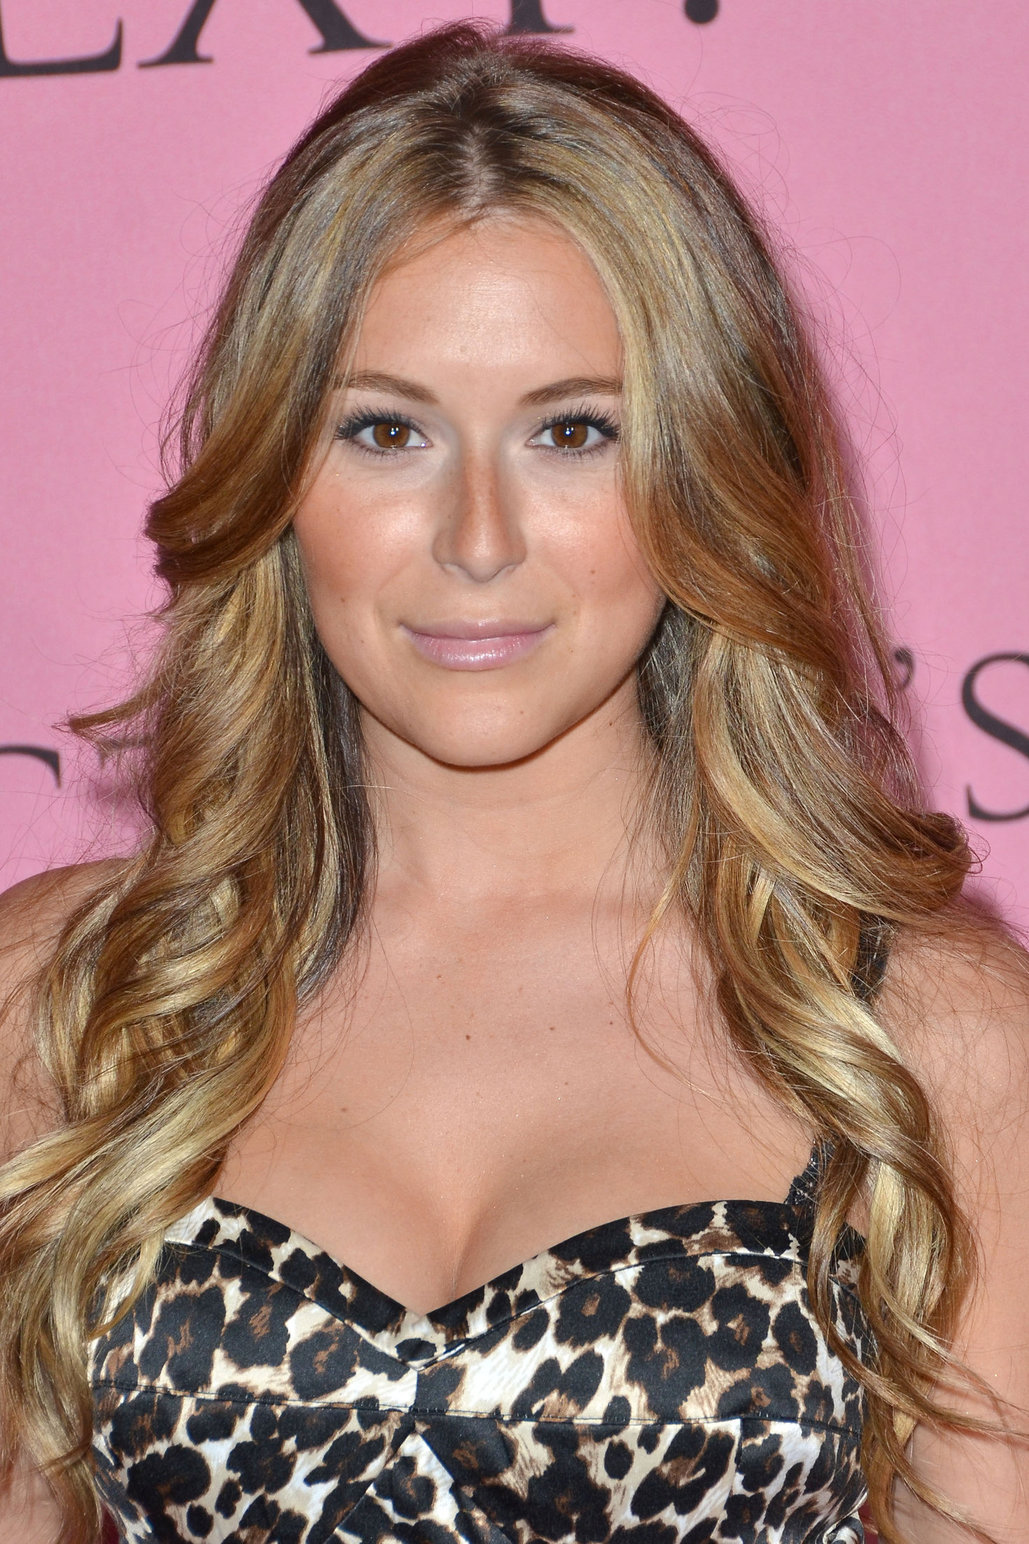 alexa vega dating Alexa vega dating speed dating frankfurt samstag where vulnerability alexa vega dating comes in, strength is born and when you can go out there and malia and stiles hookup be completely raw and open its much bigger than you, julianne hough added.